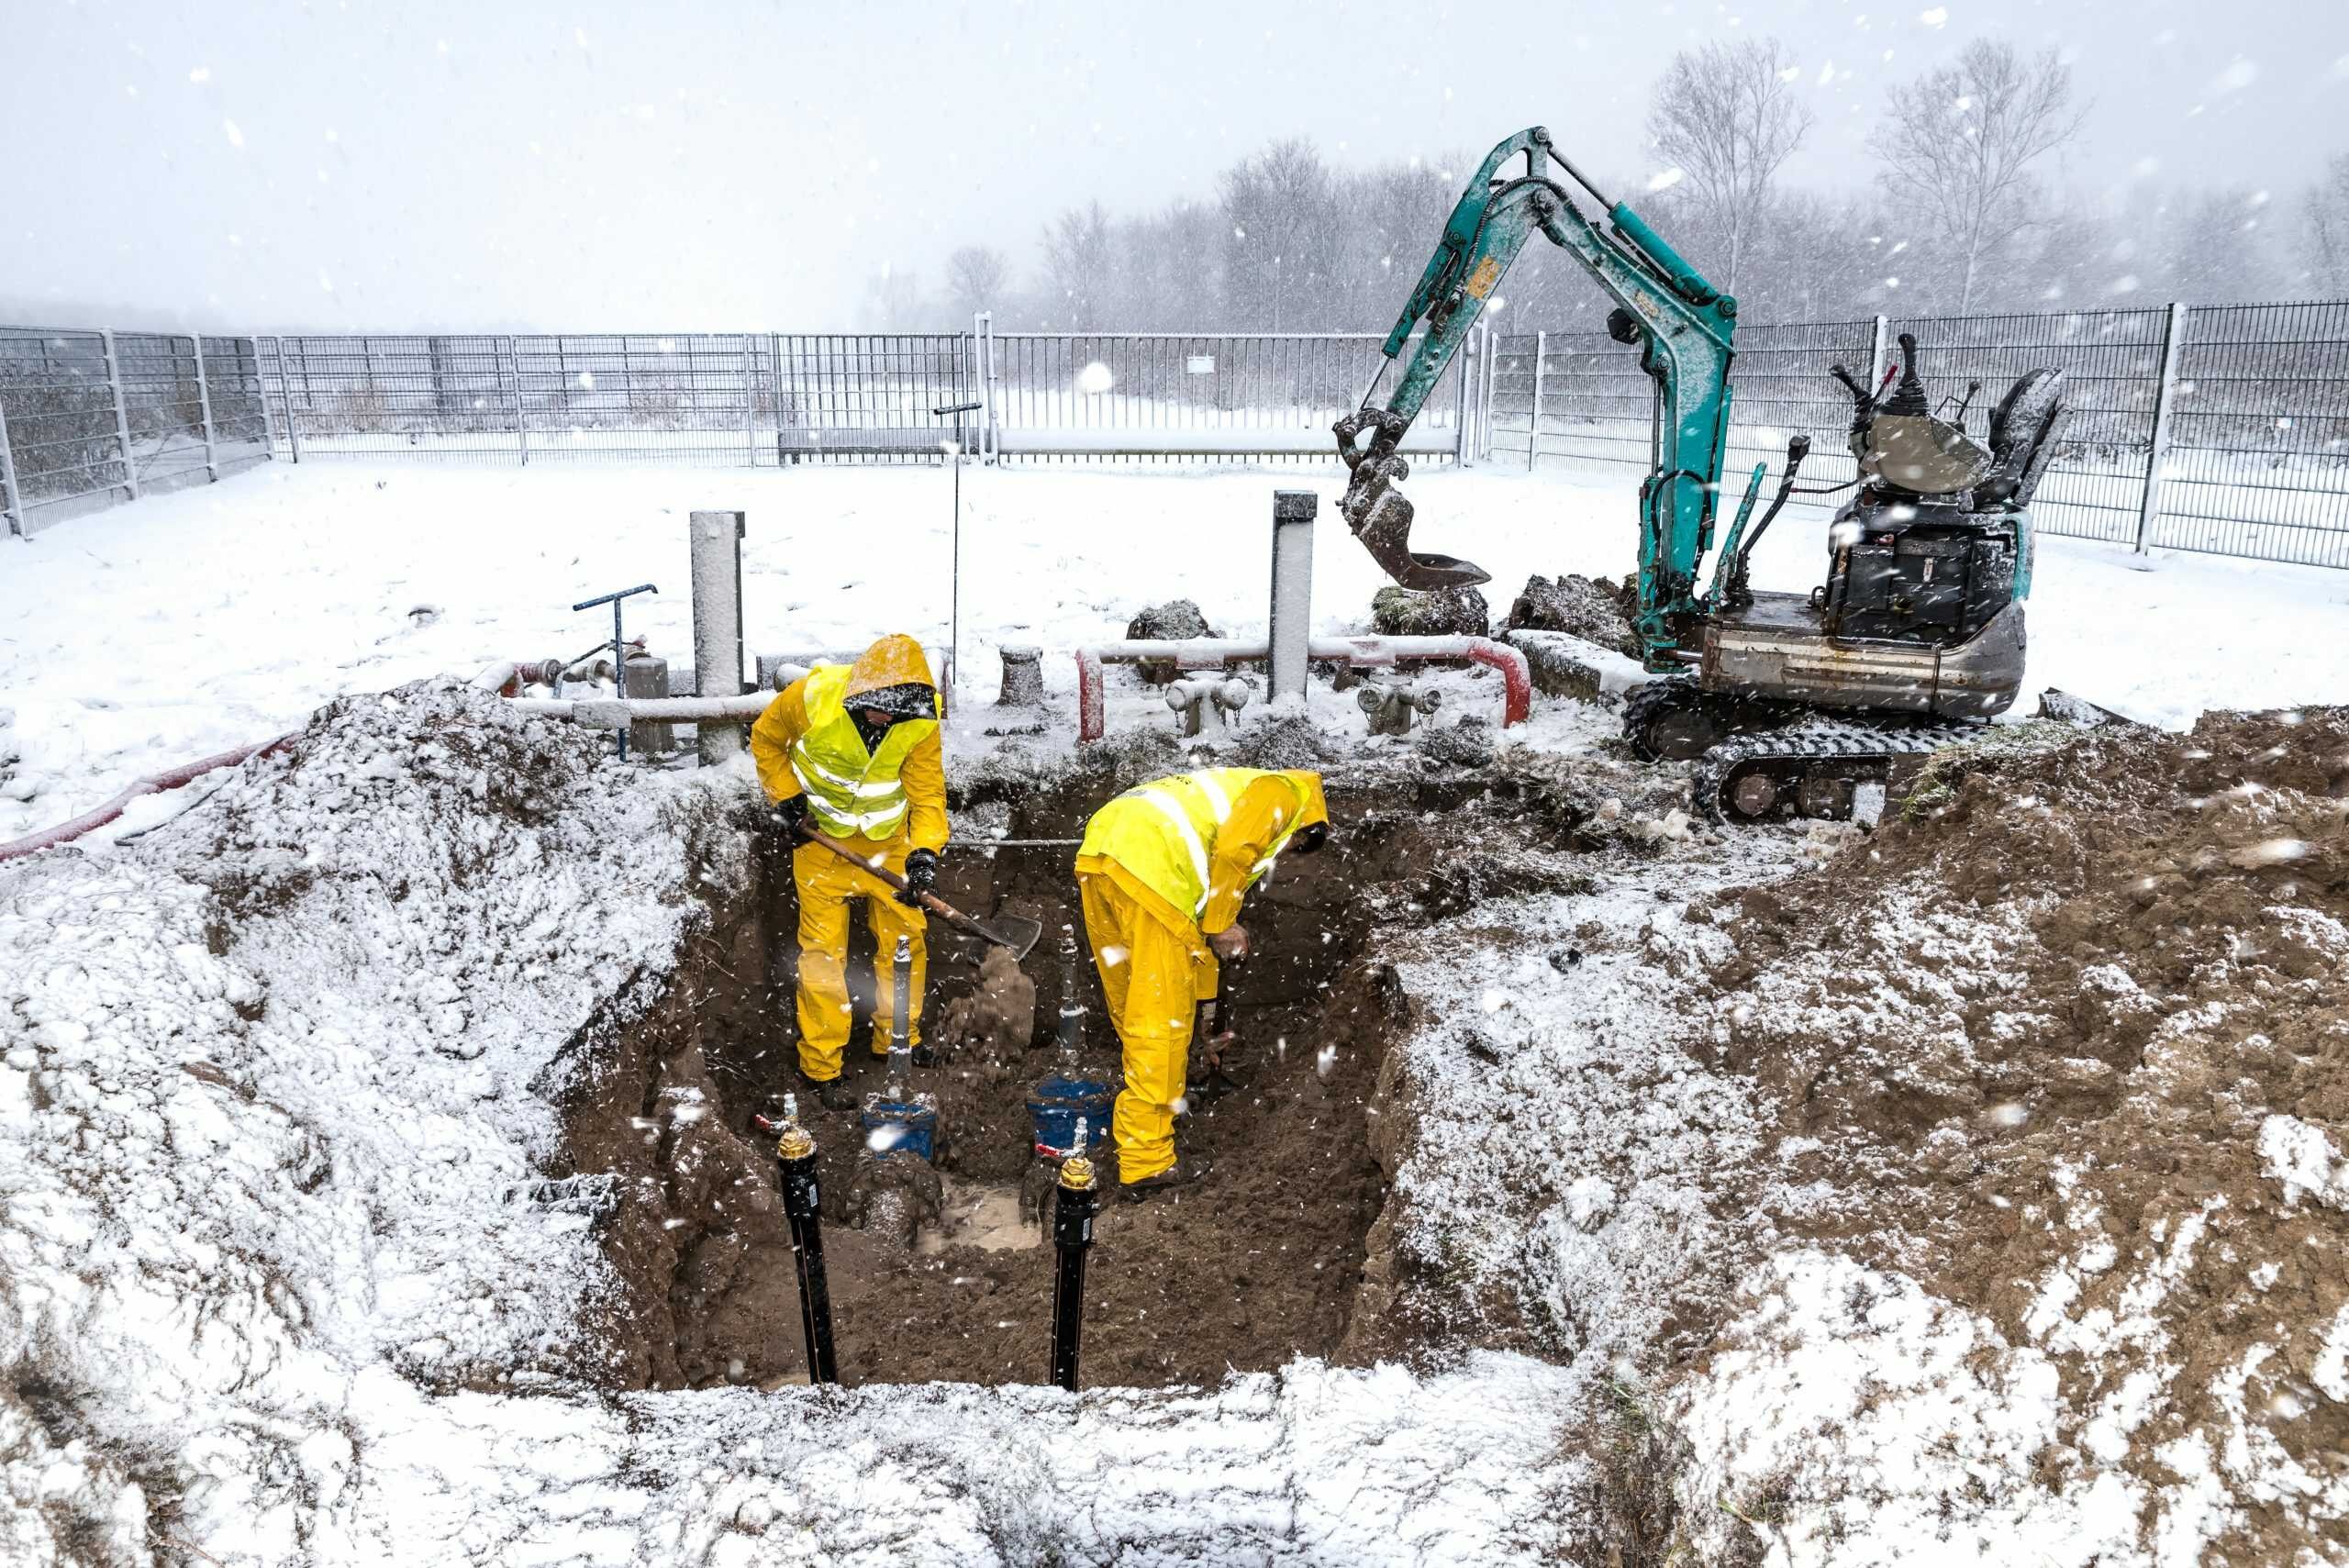 Winter Workplace Safety